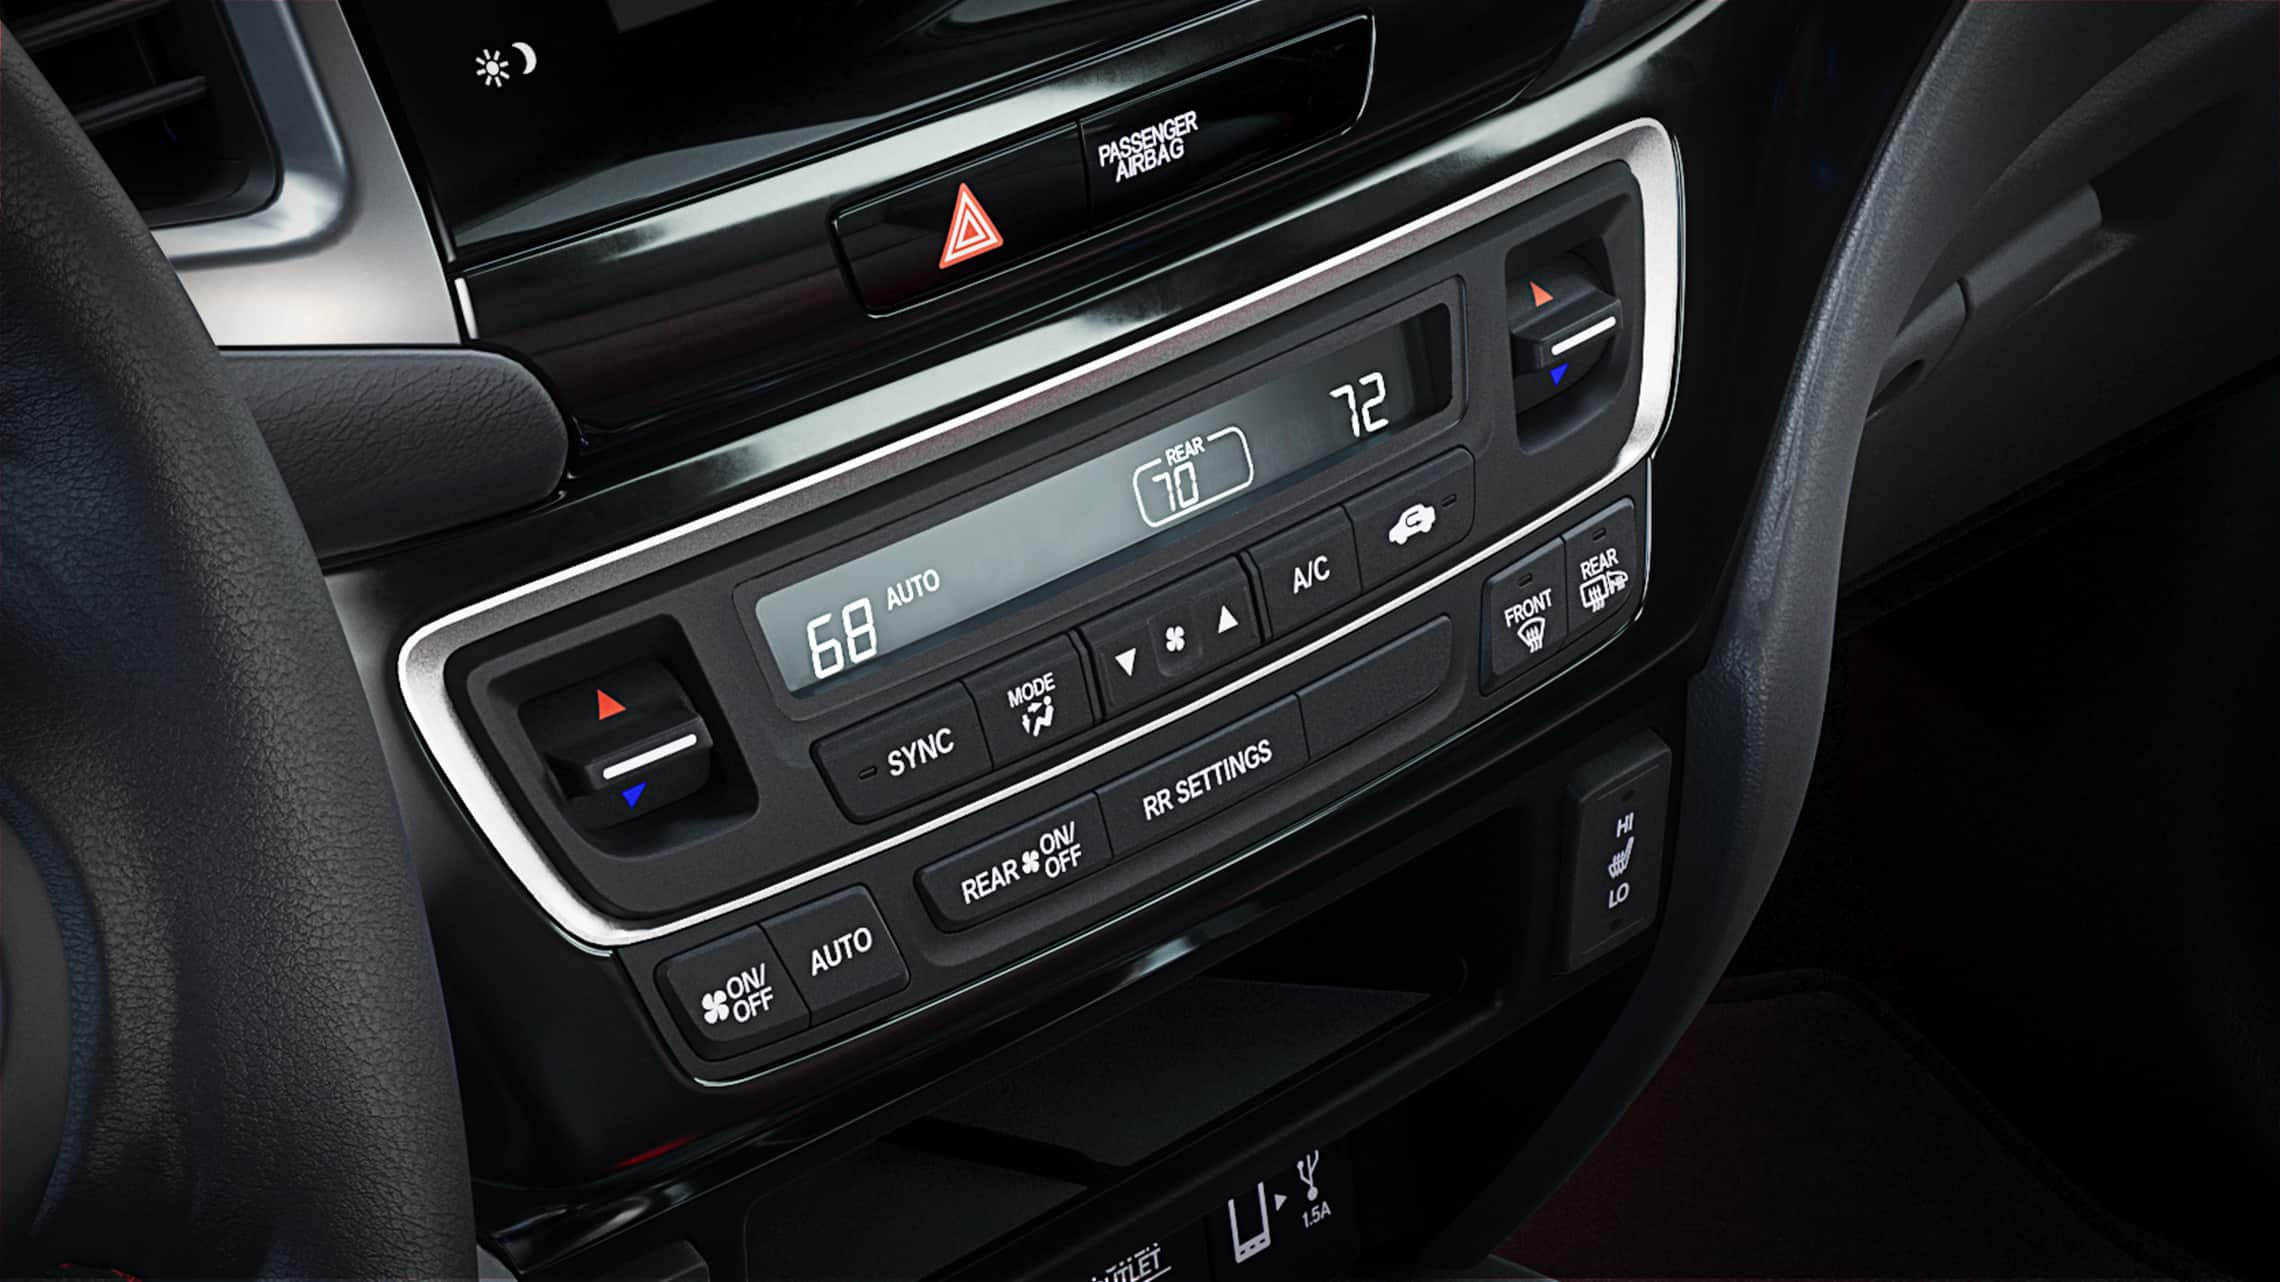 Tri-zone climate-control detail in the 2020 Honda Ridgeline.